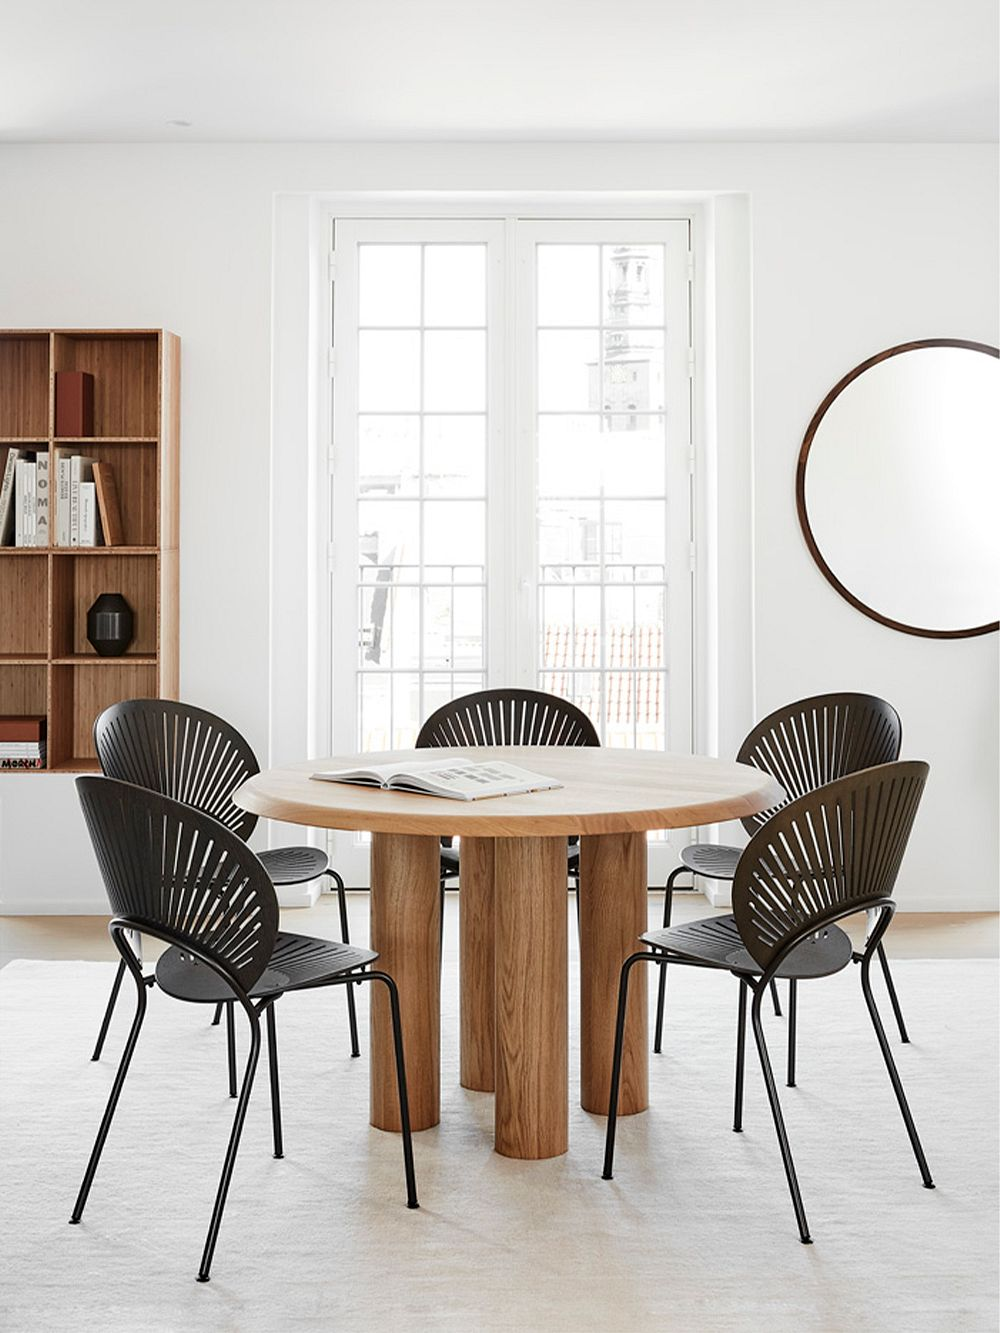 Fredericia Trinidad chairs in black